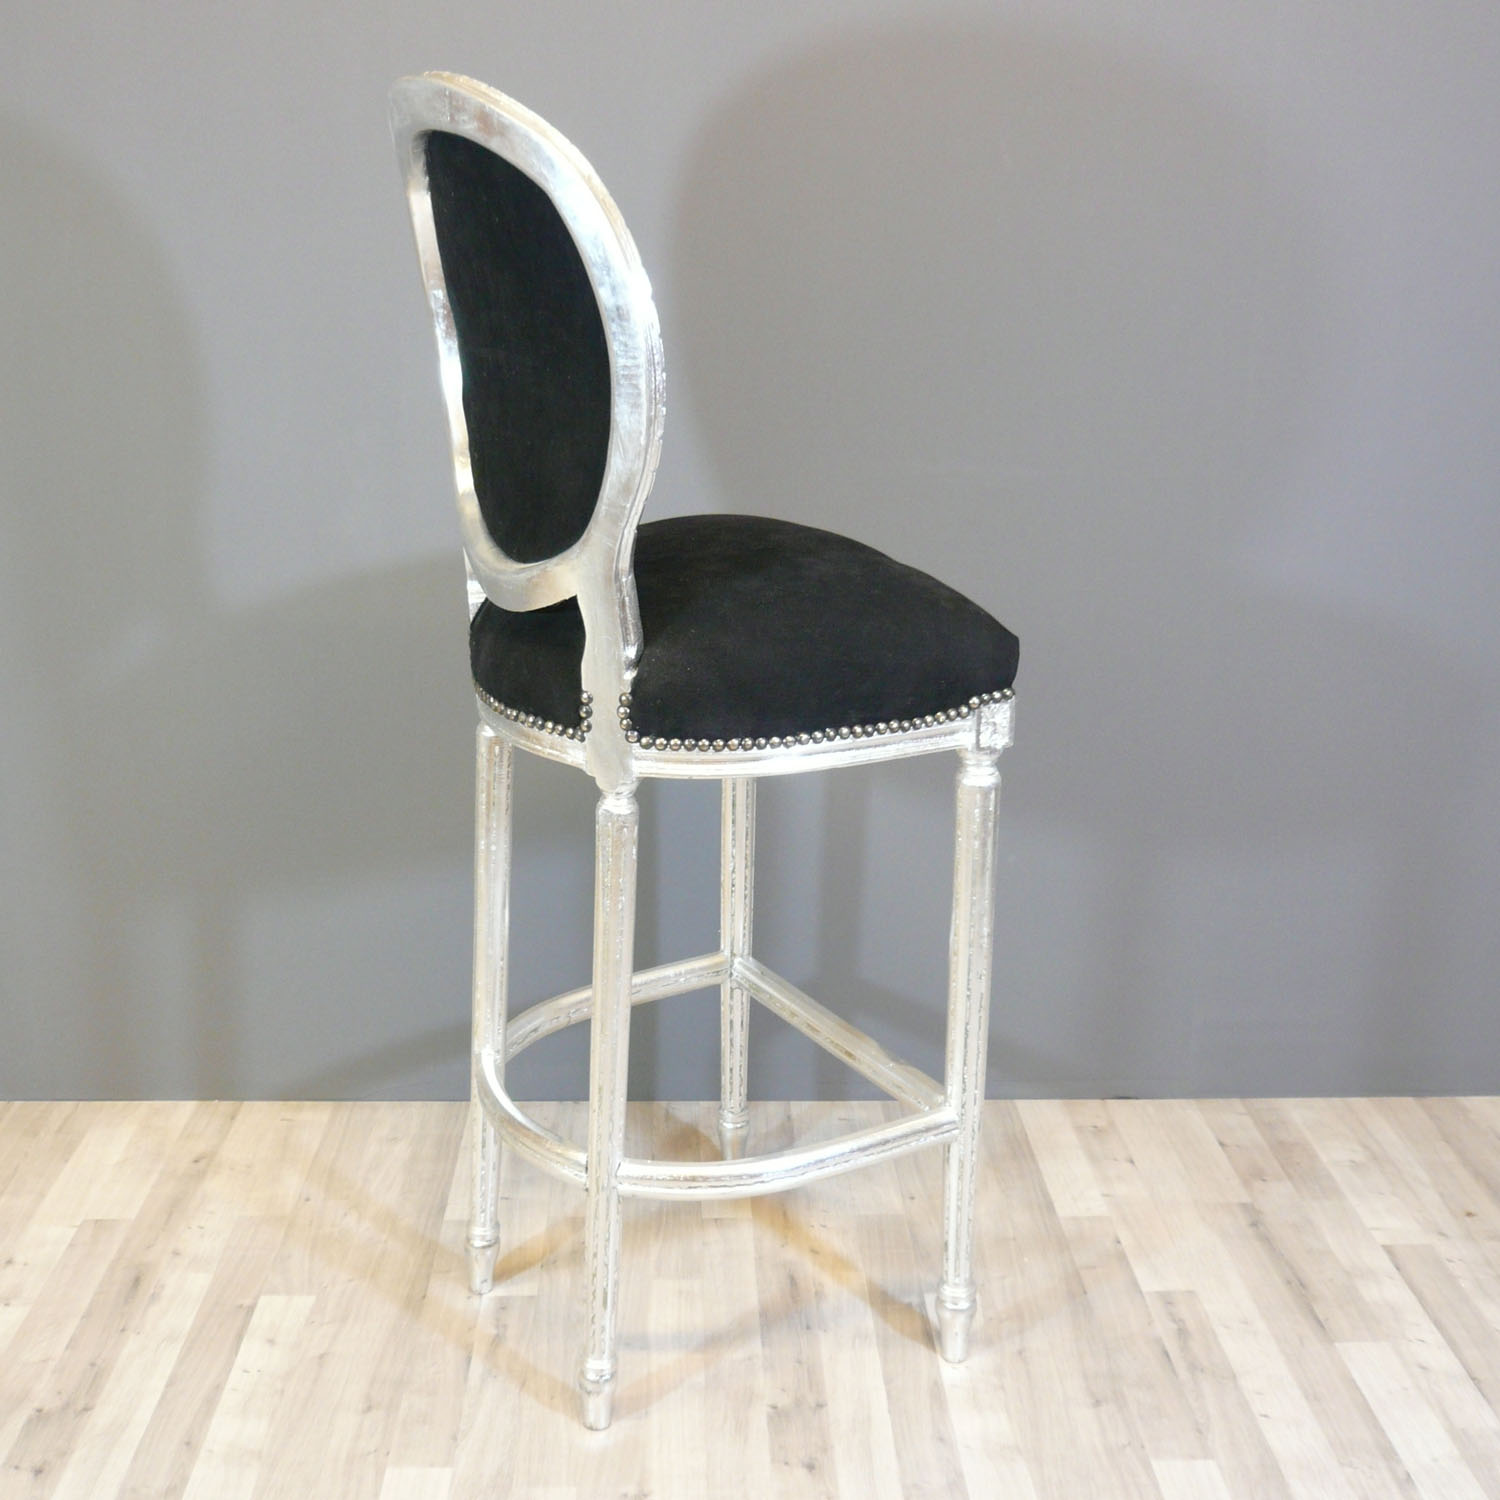 Bar chair baroque style of louis xvi baroque chairs for Chaise transparente pas cher ikea